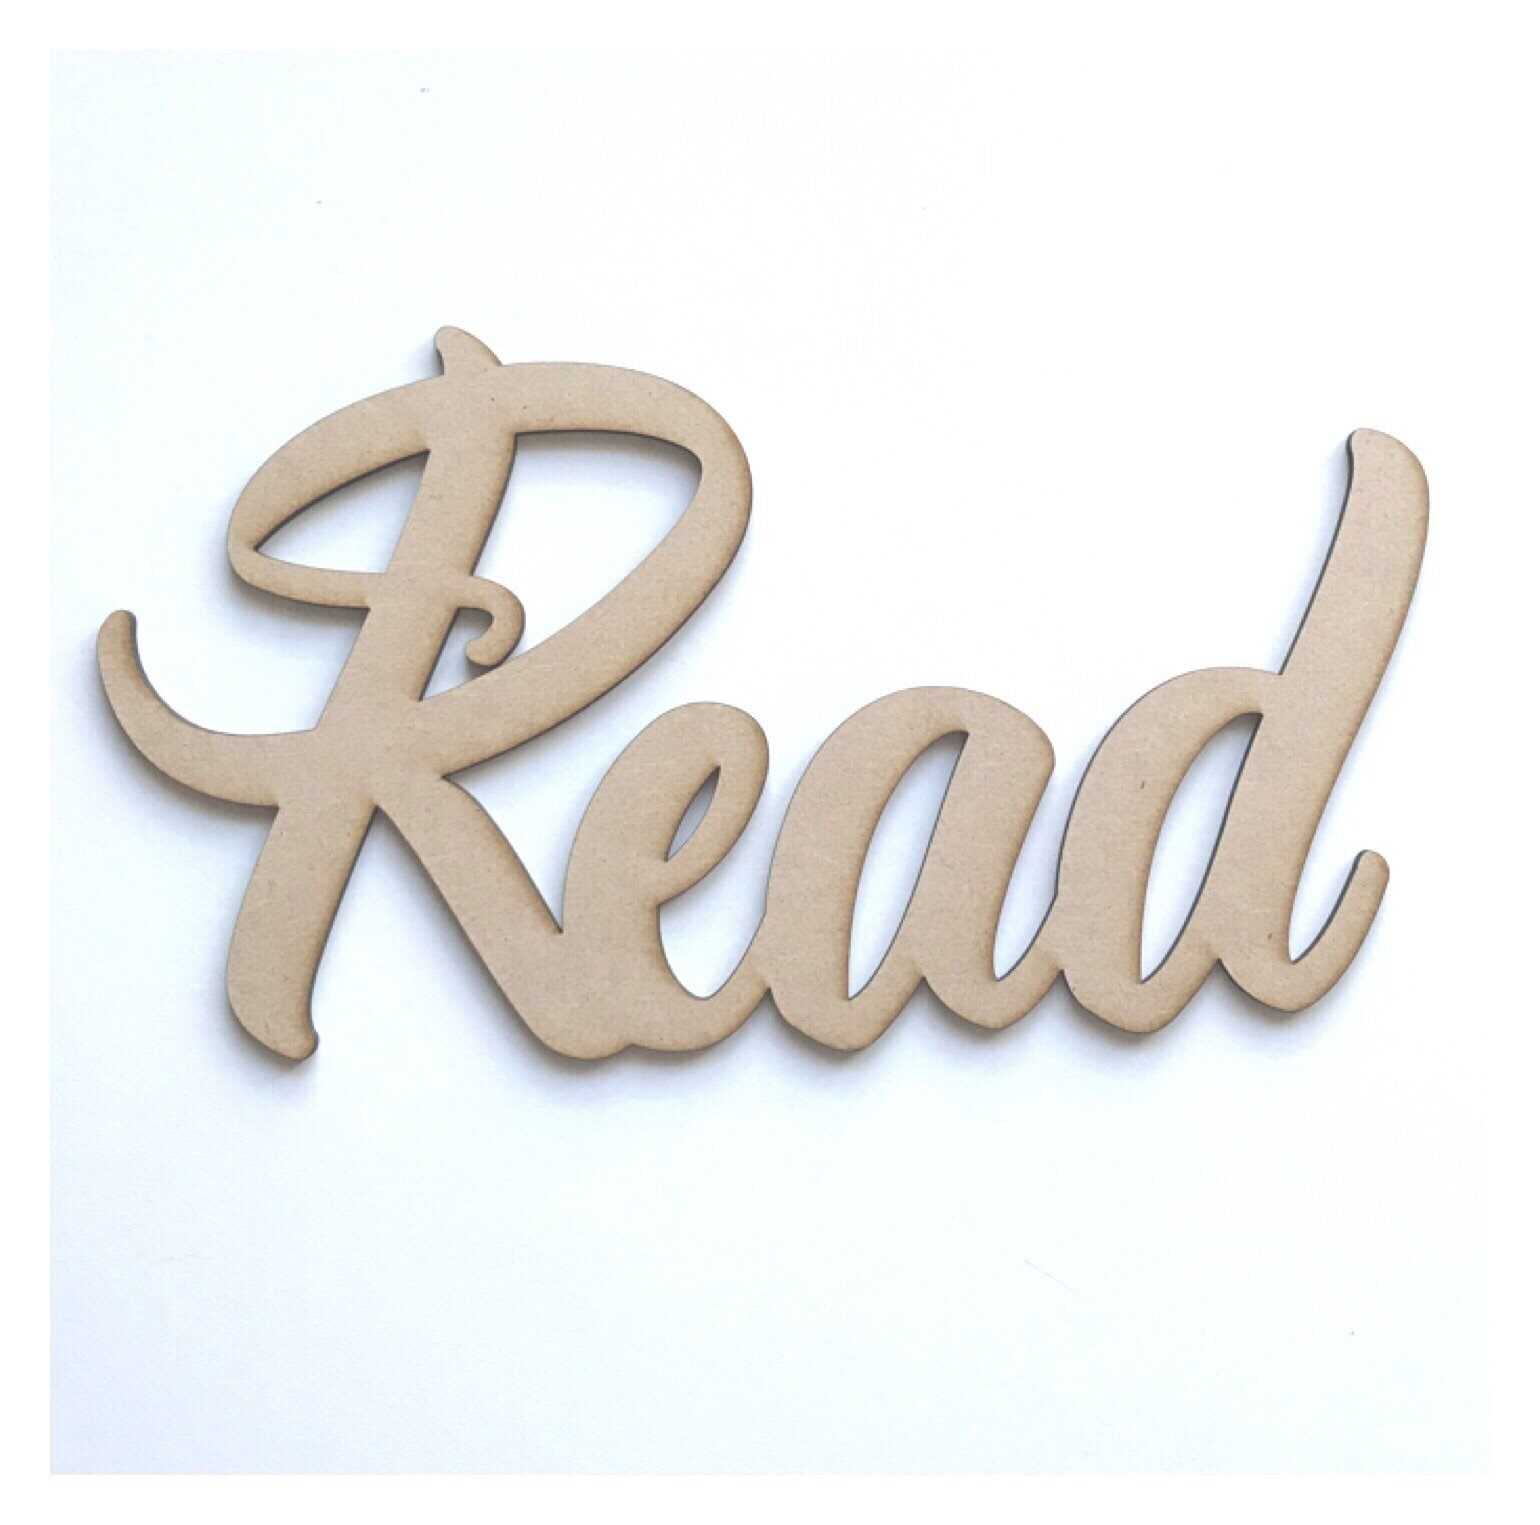 Read Word Wall Quote Art DIY Raw MDF Timber Wood - The Renmy Store